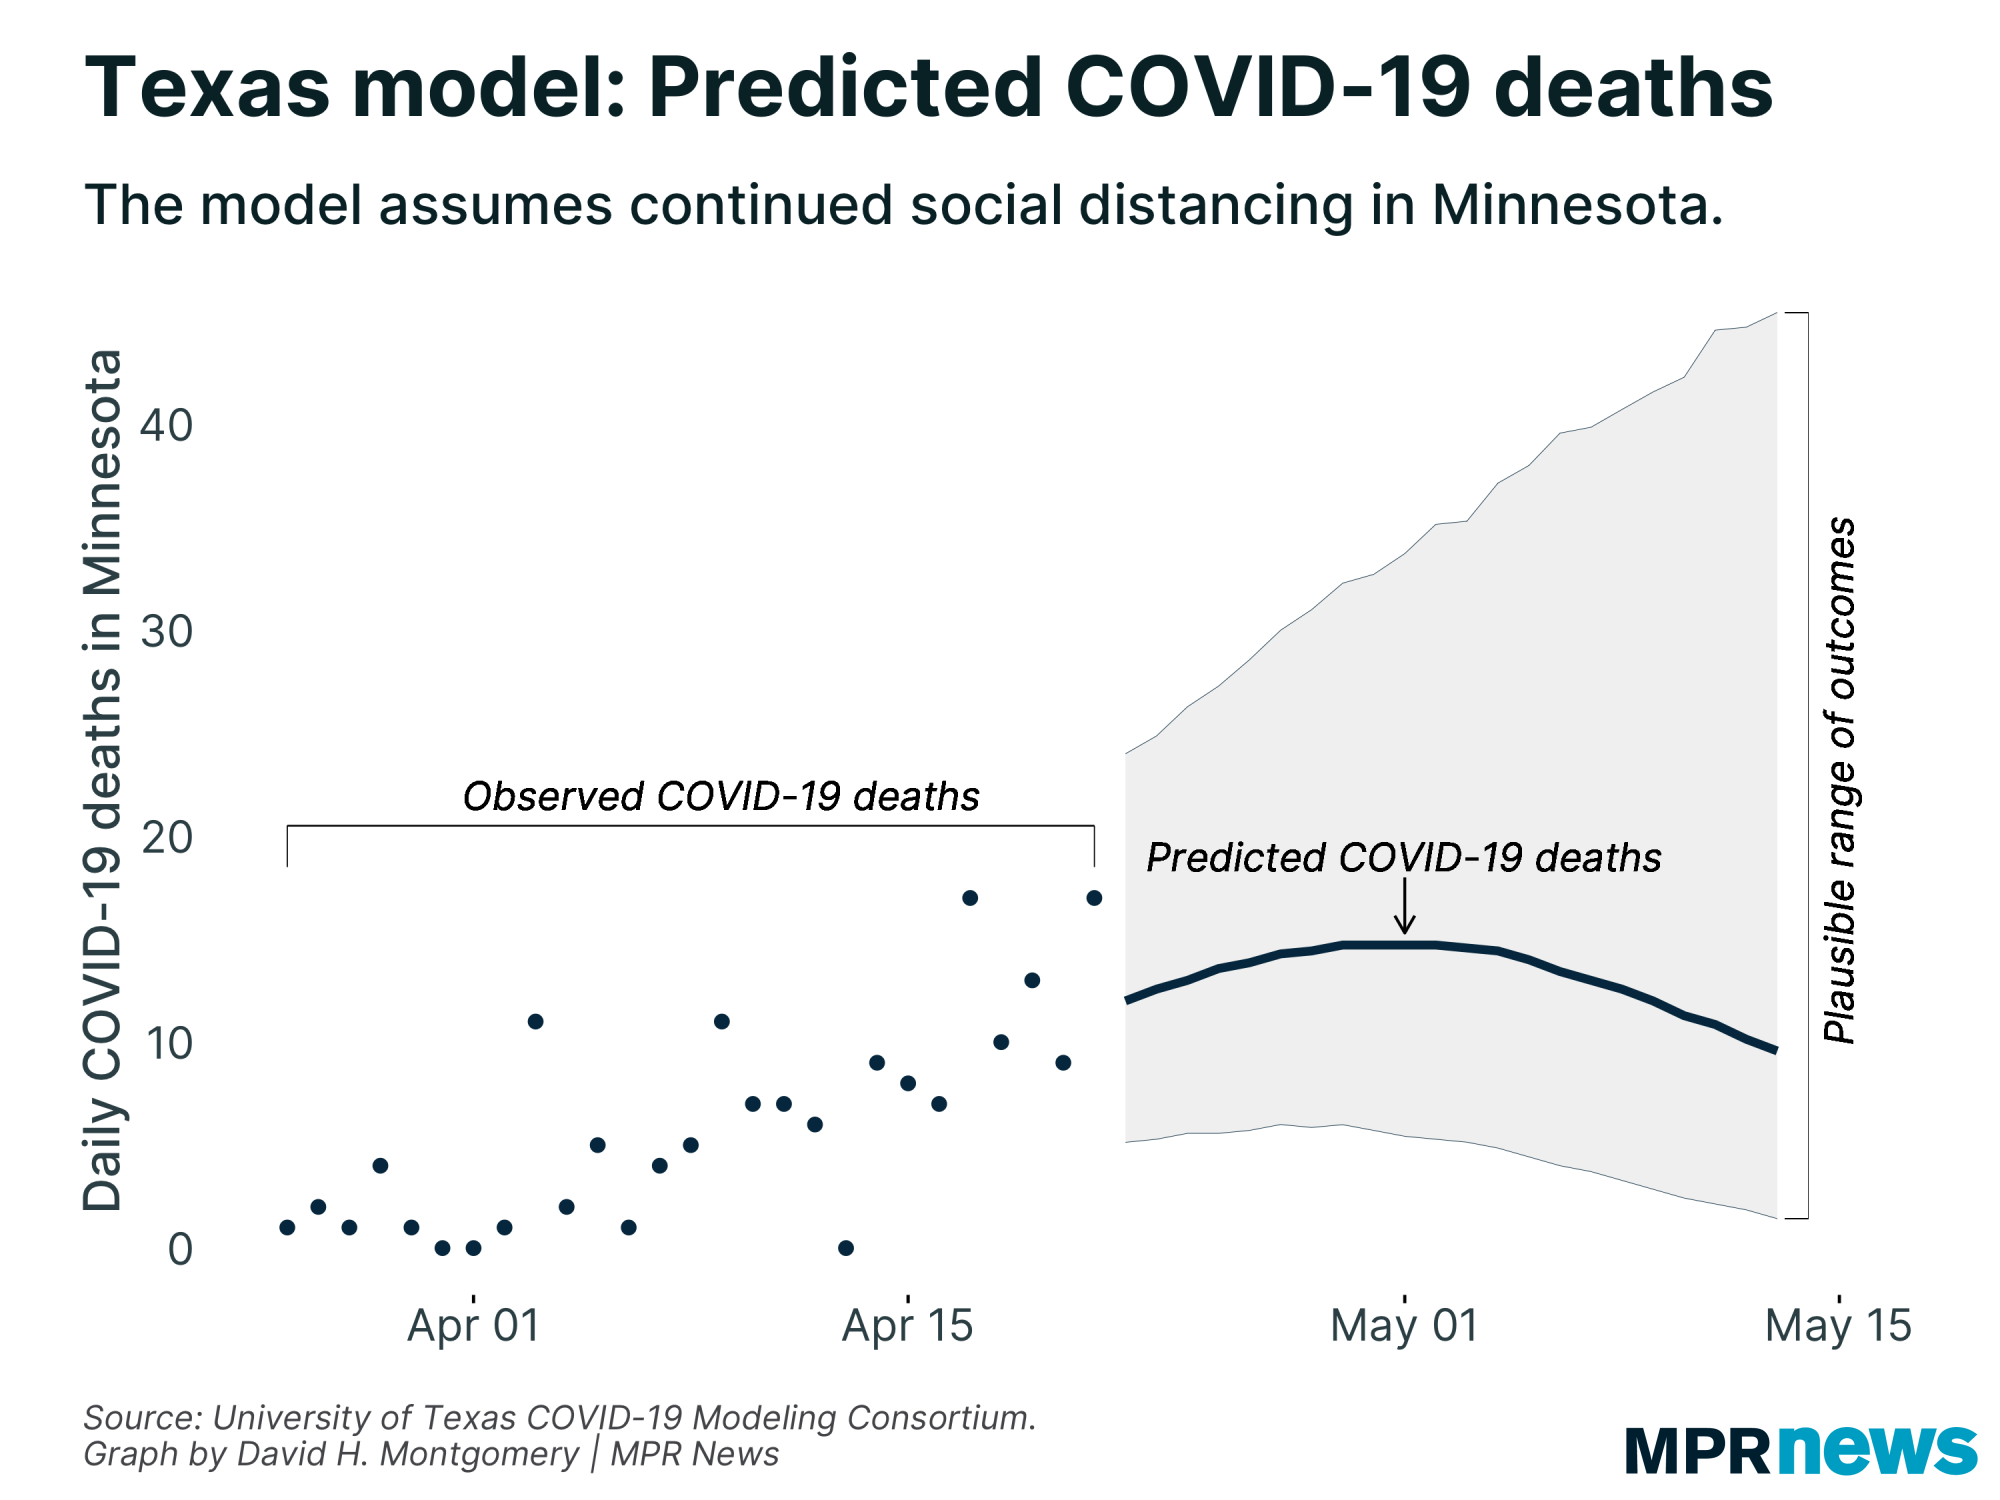 The University of Texas' COVID-19 model predictions